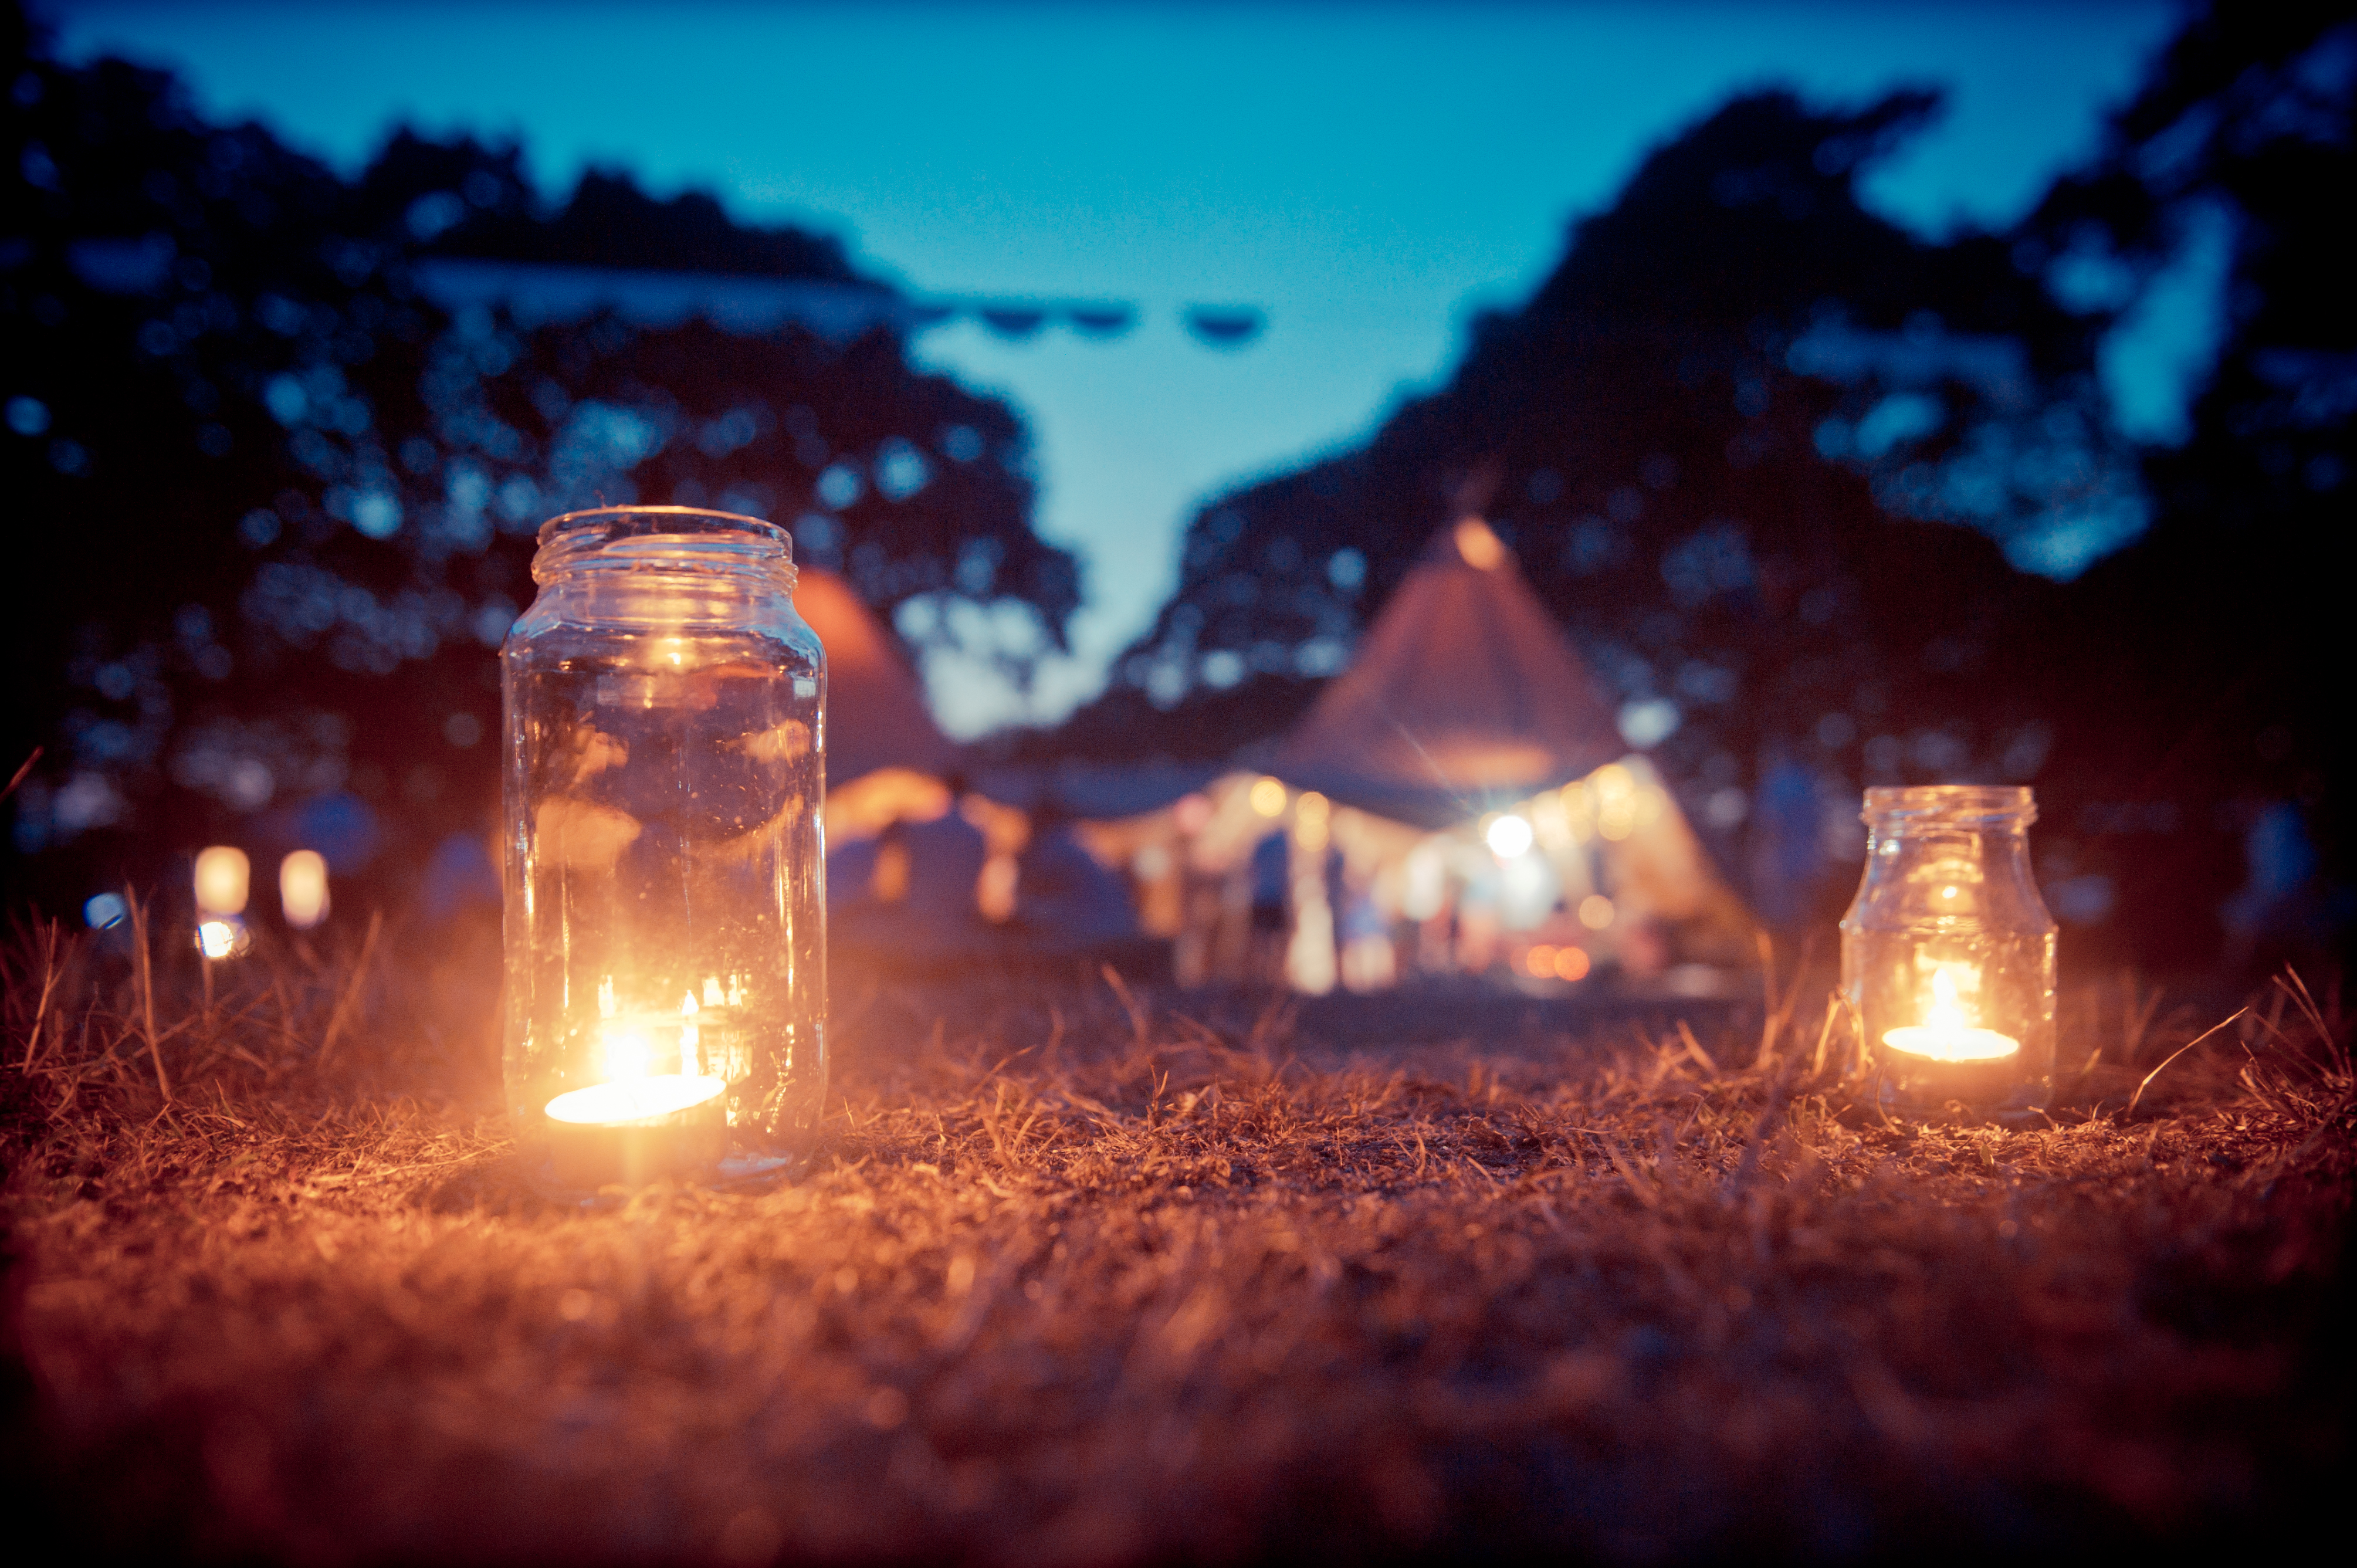 Valentine's wedding theme with candlelight